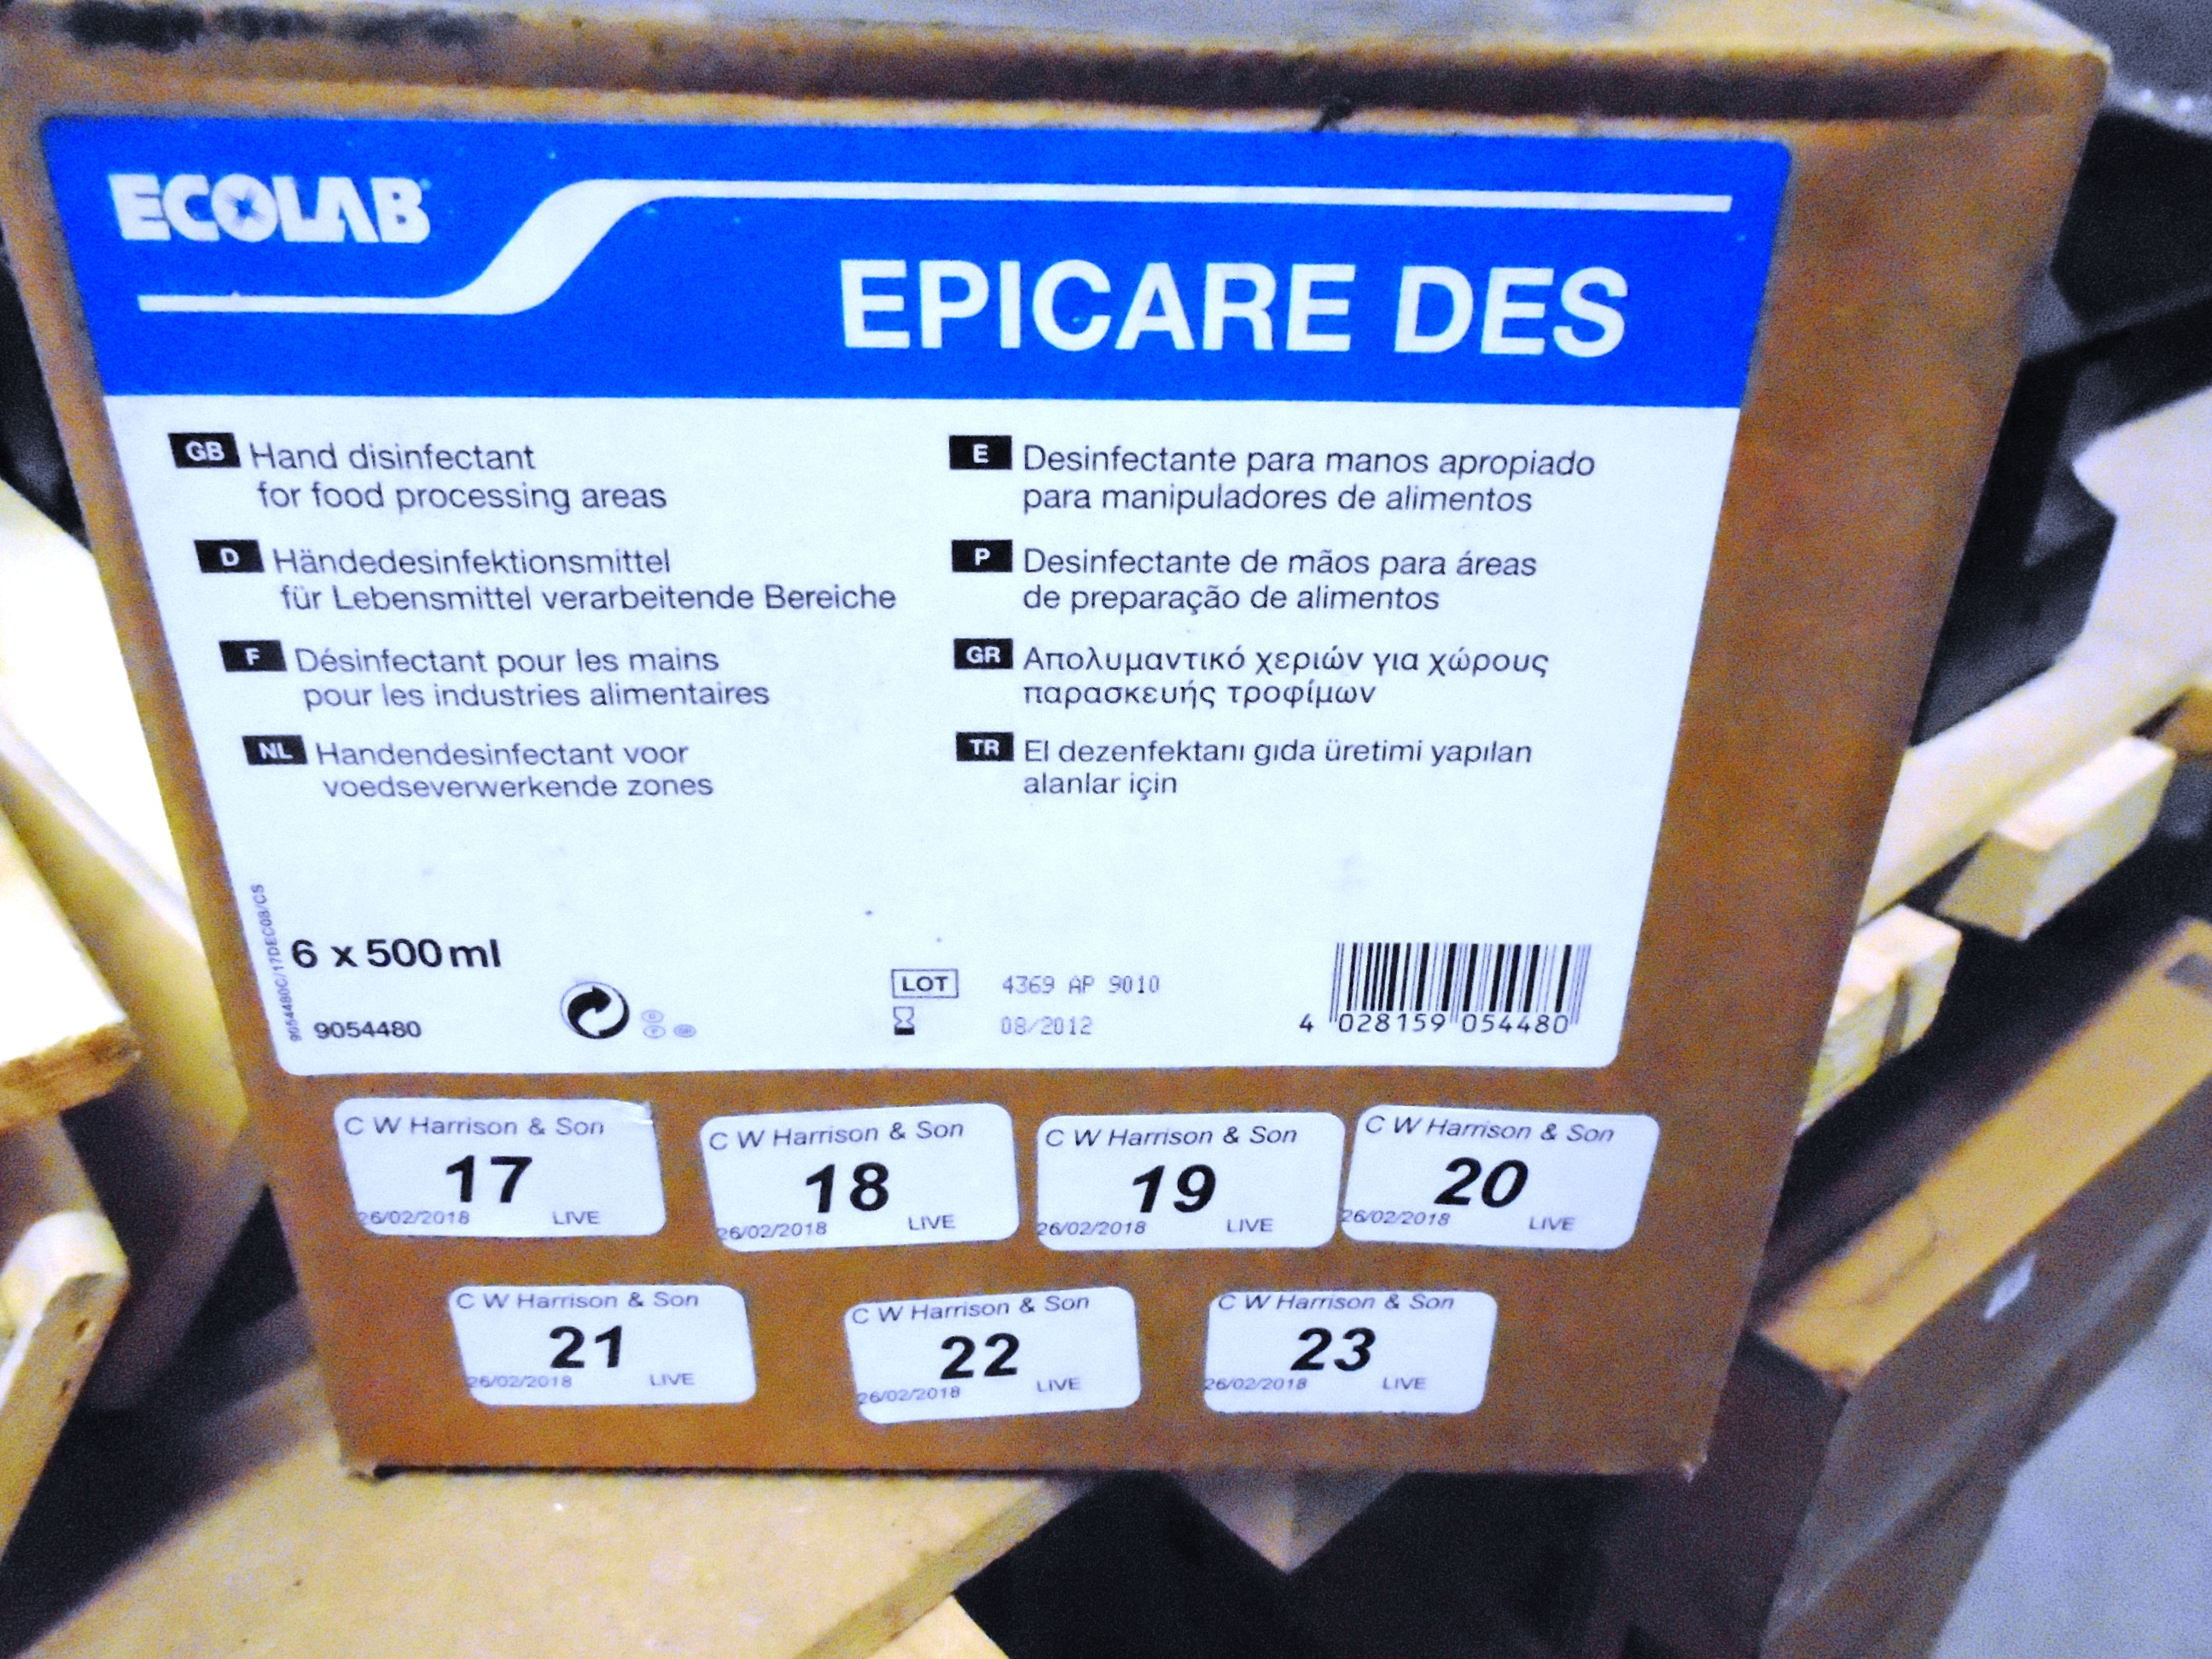 Lot 20 - 120 x Ecolab hand disinfectant for food processing areas (20 x outer boxes)